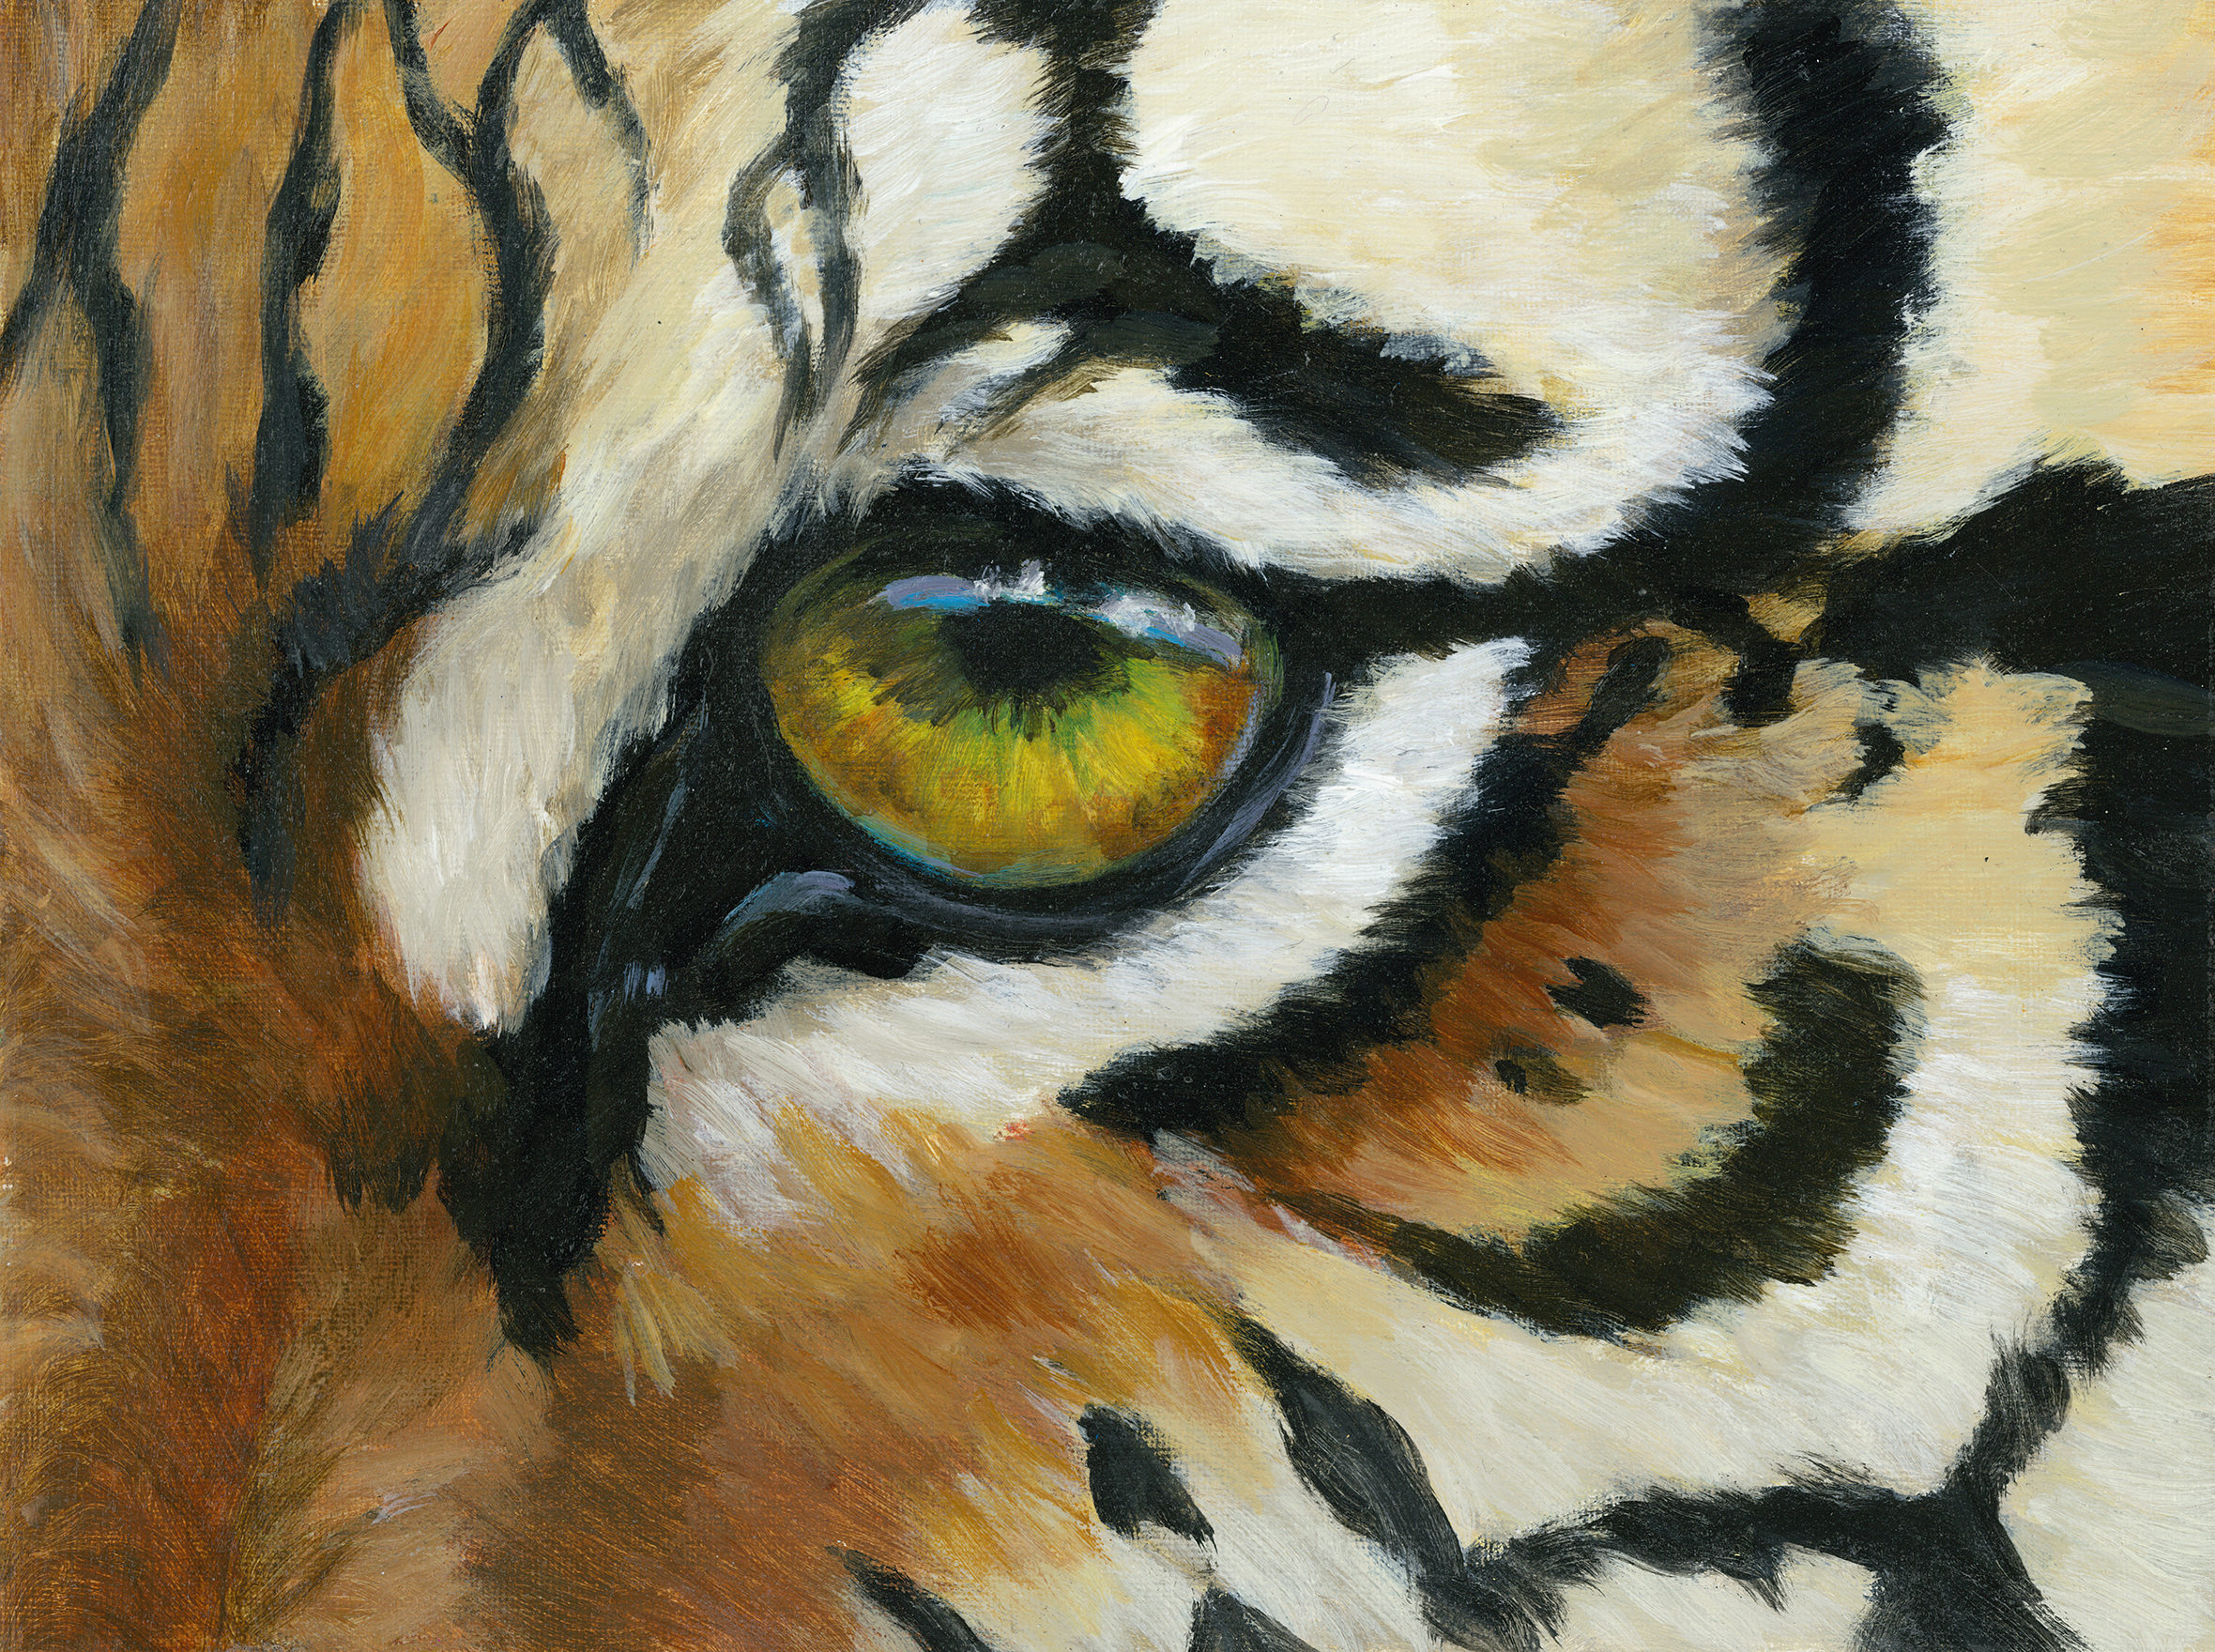 tigerfinished - Copy